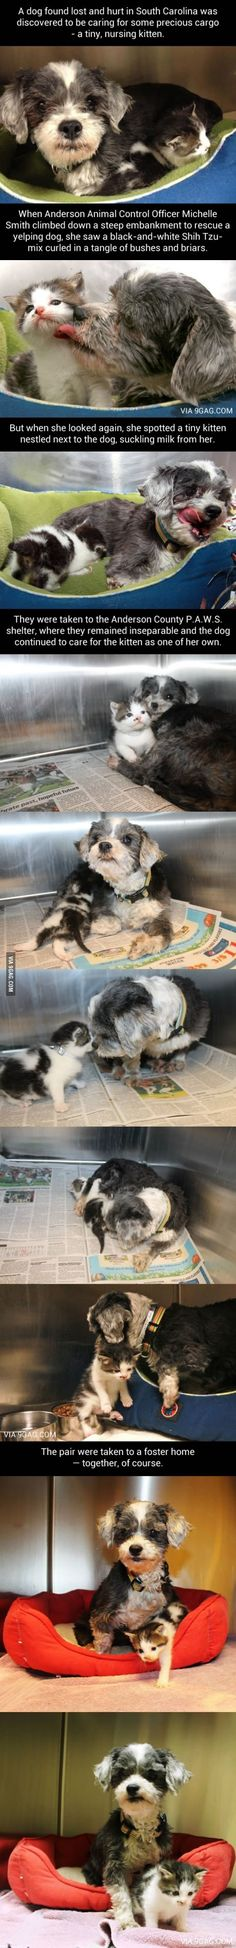 9GAG - Lost Dog Finds A Tiny Kitten And Saves Her